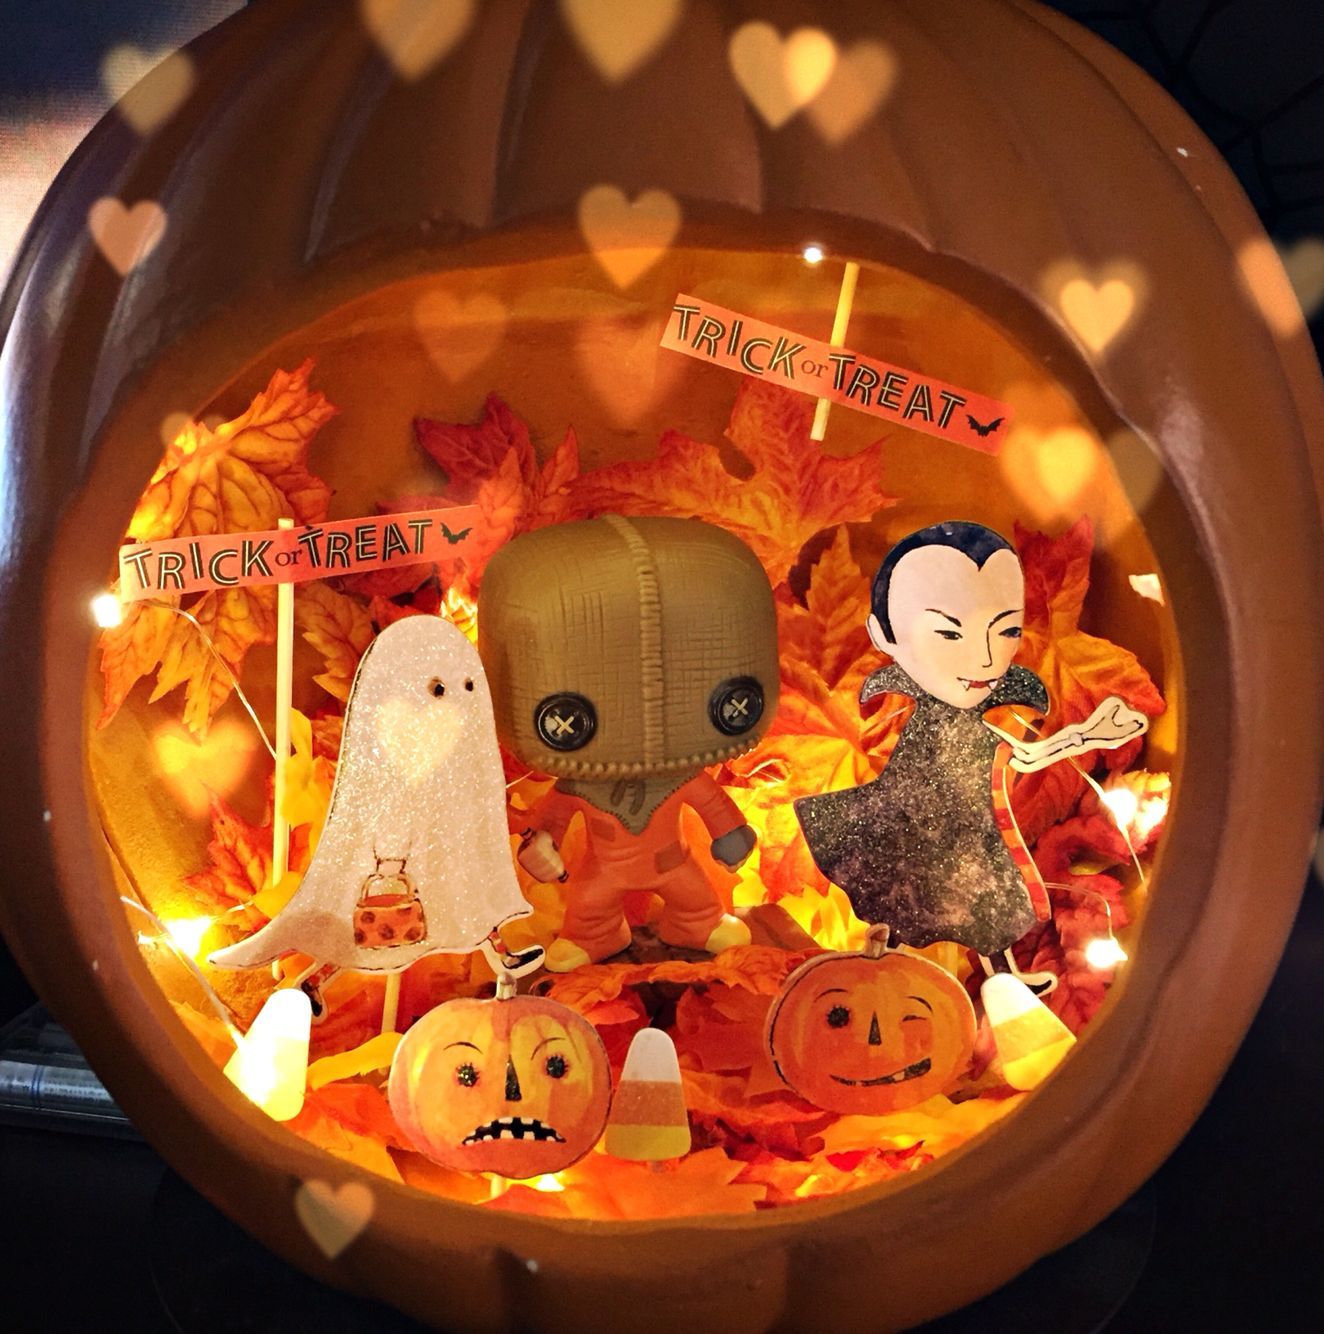 Trick R Treat inspired pumpkin diorama #halloweeniseveryday - fall and halloween decorations